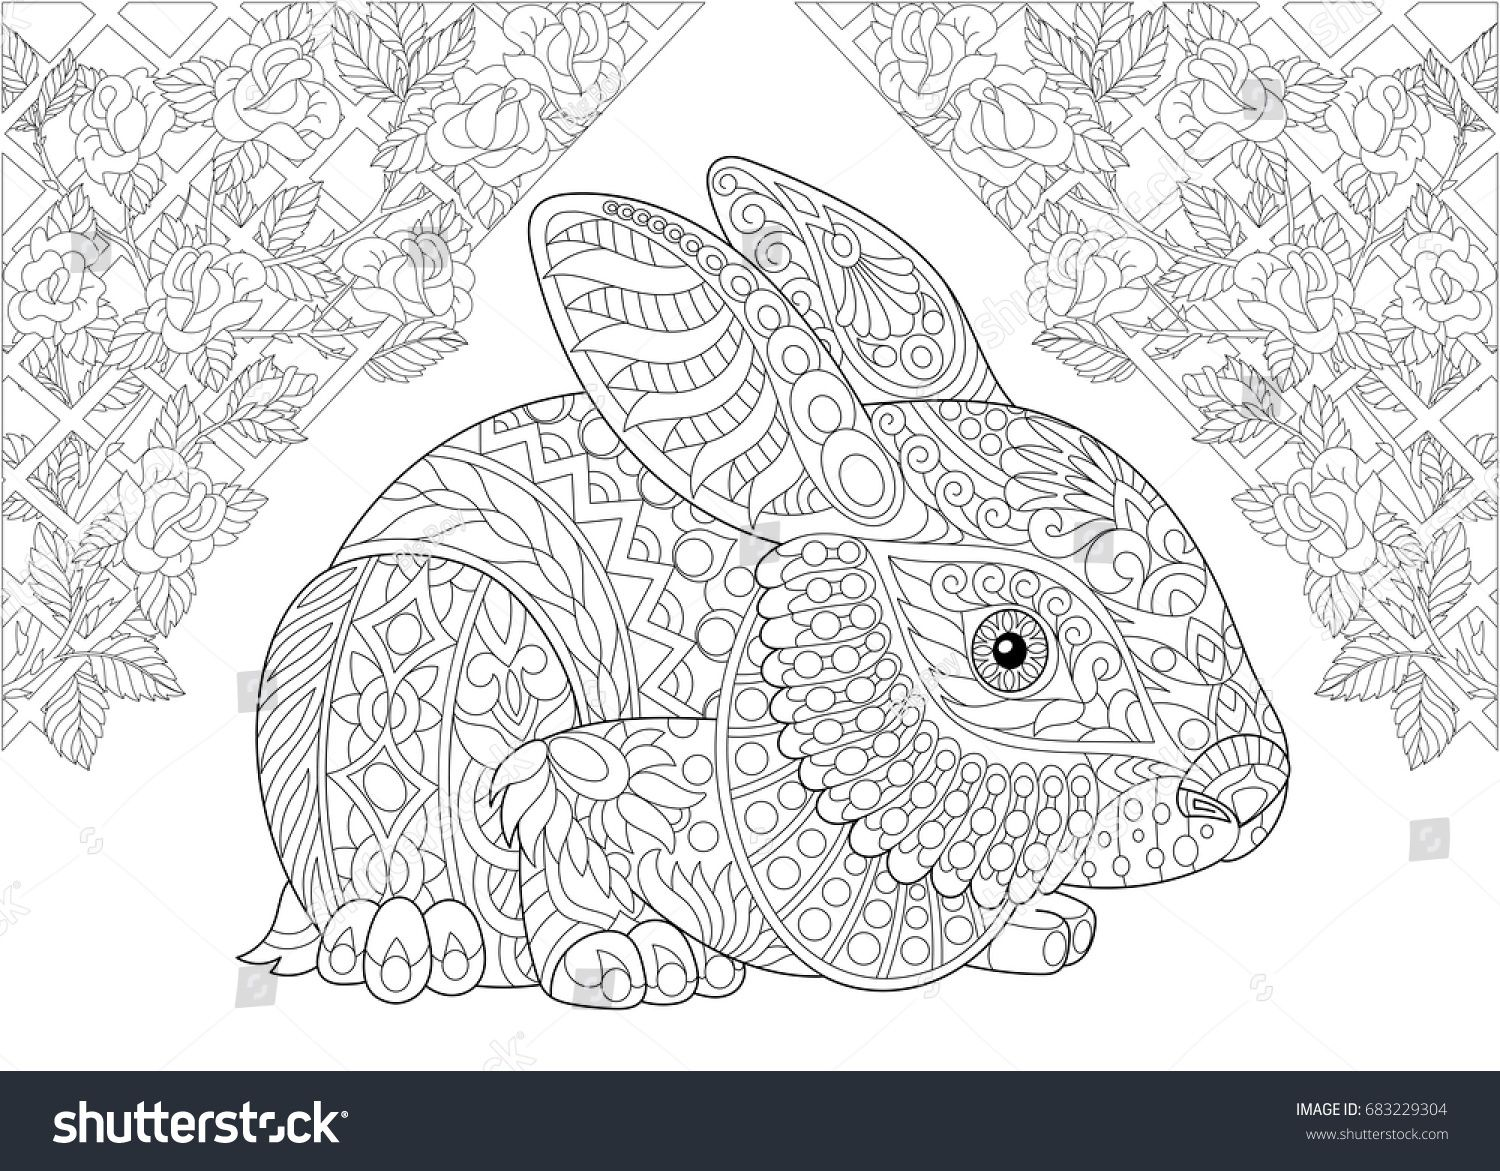 Coloring page rabbit from wonderland and rose flowers freehand